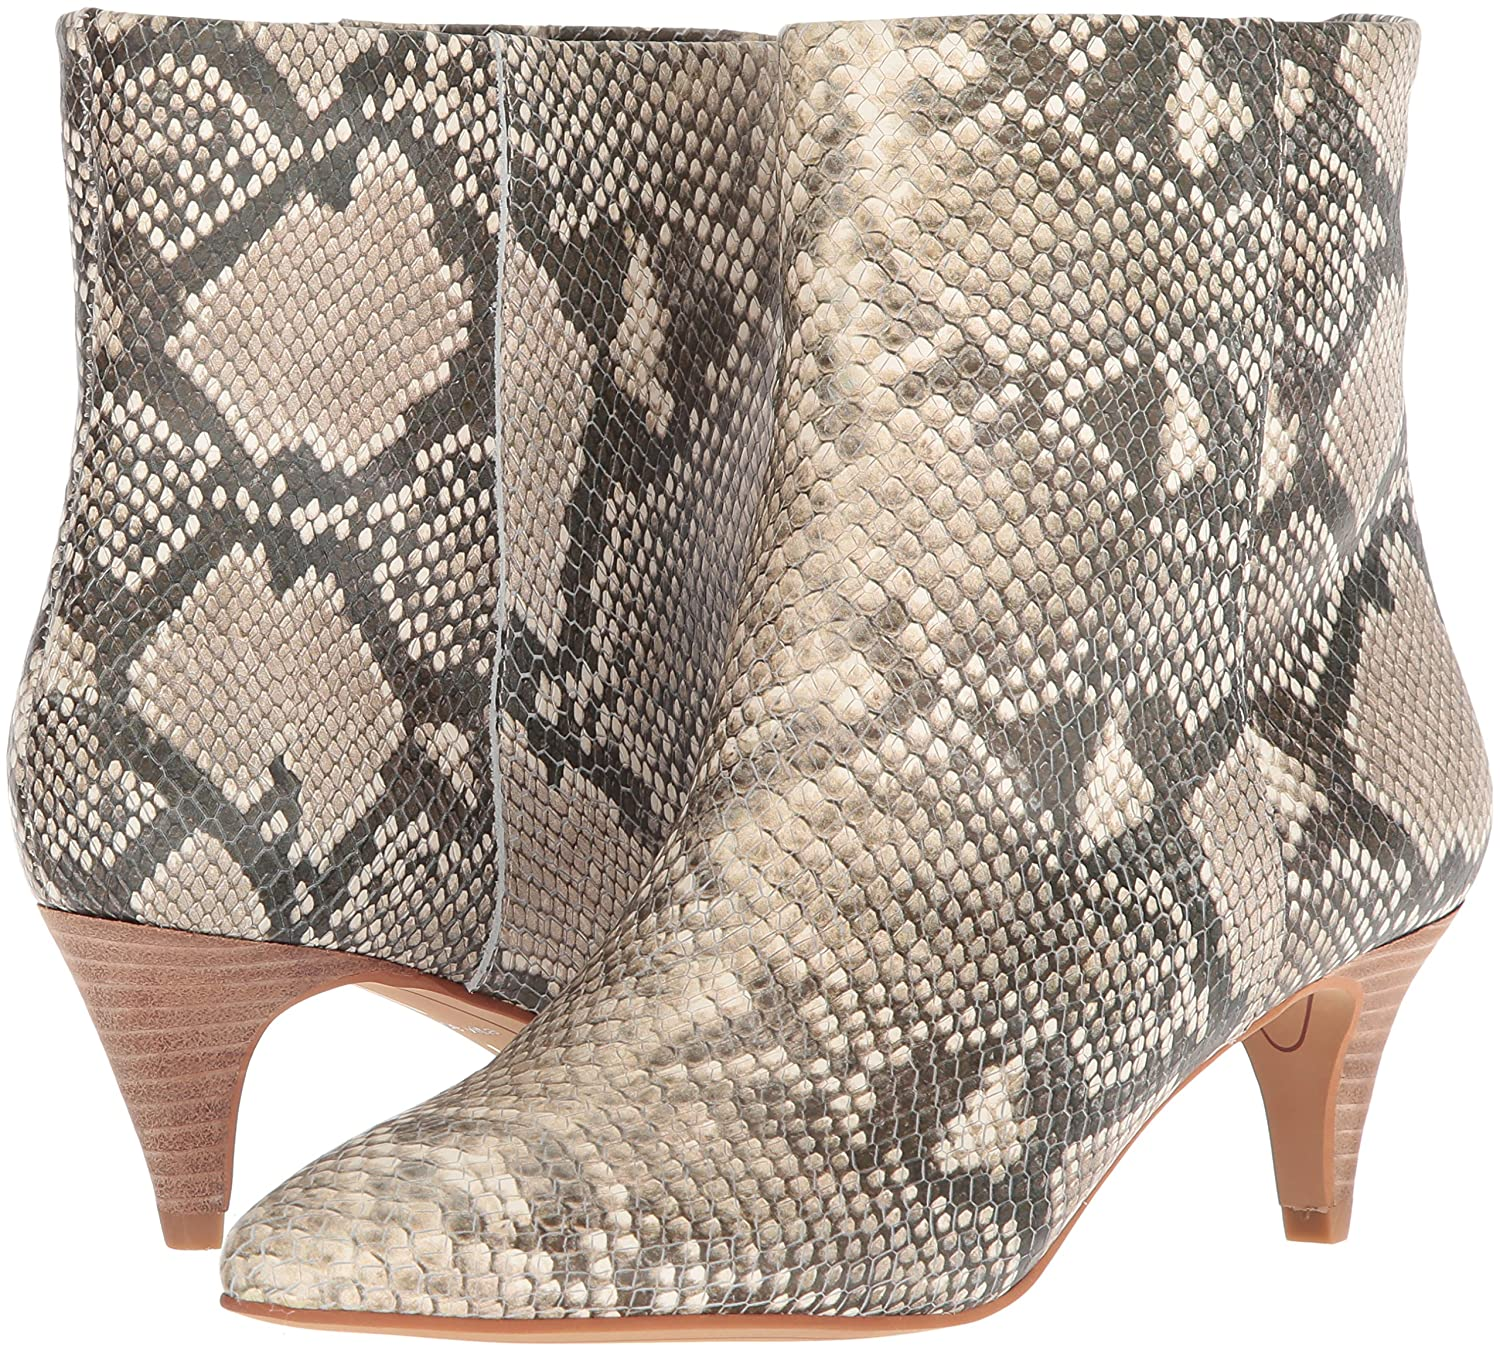 Dolce Vita Women's Deedee Ankle Boot Print B079Q9LJSK 6 B(M) US|Snake Print Boot Embossed Leather 7f2f5a